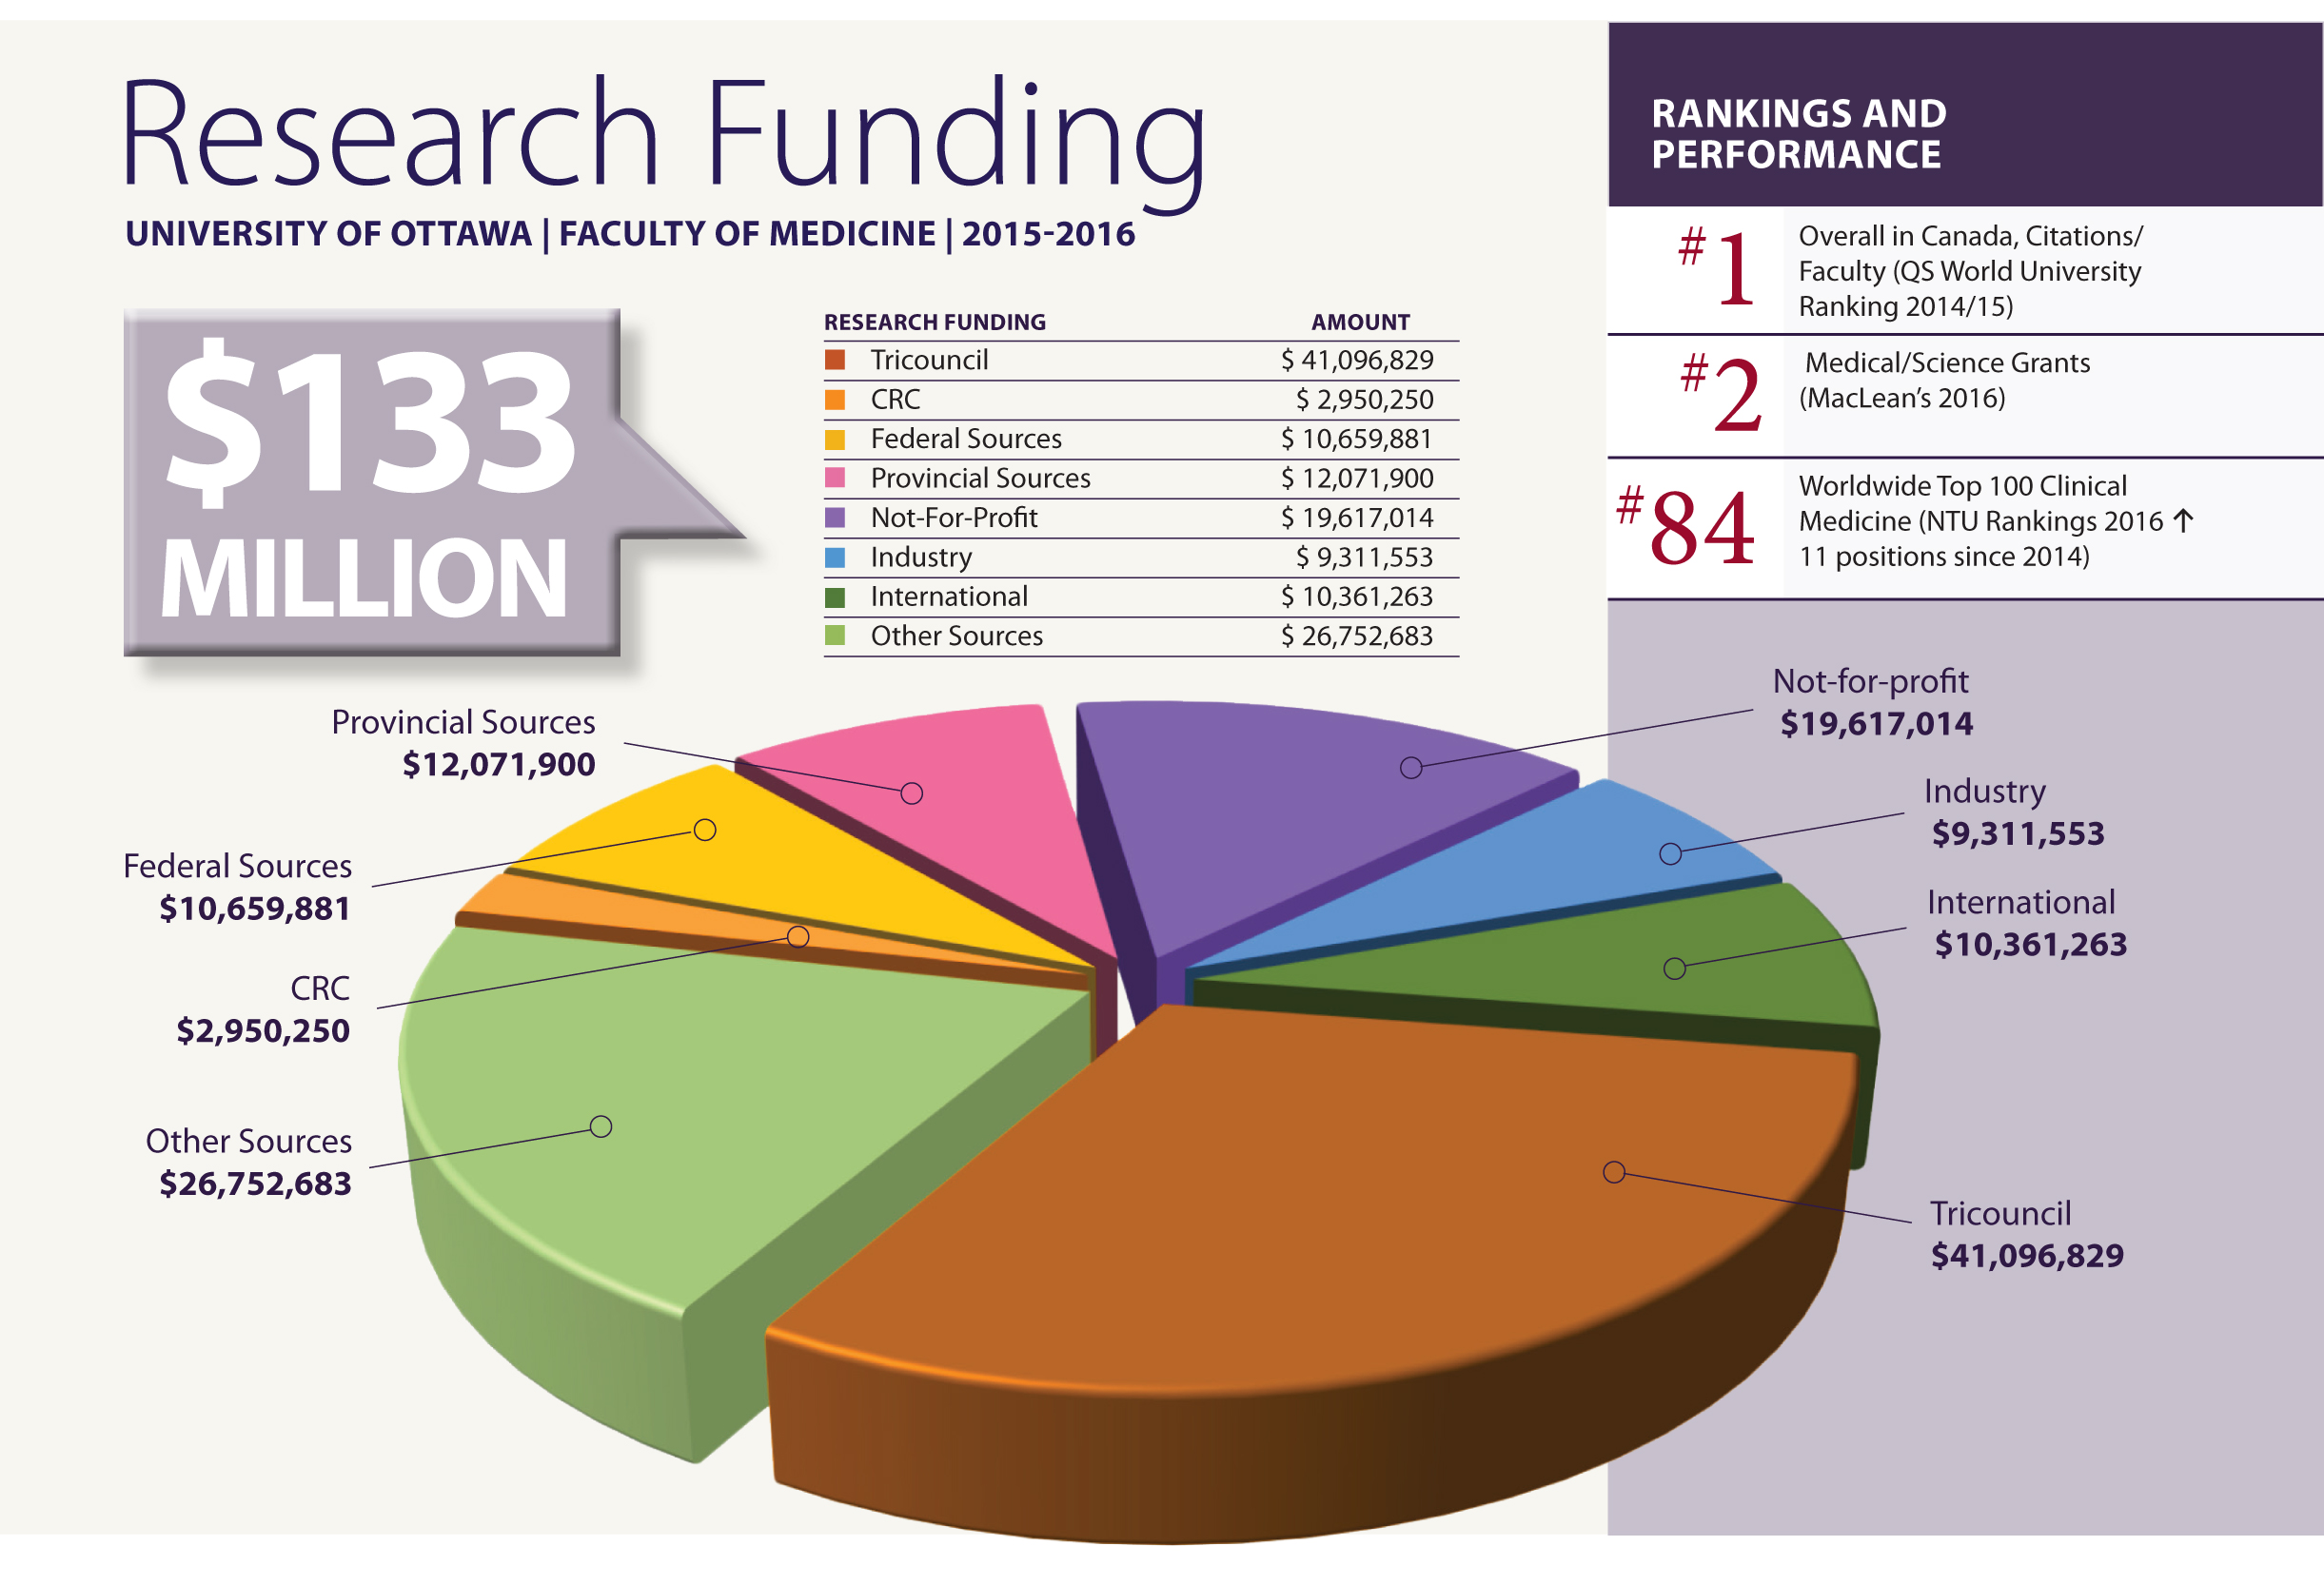 2015-2016 Research Funding